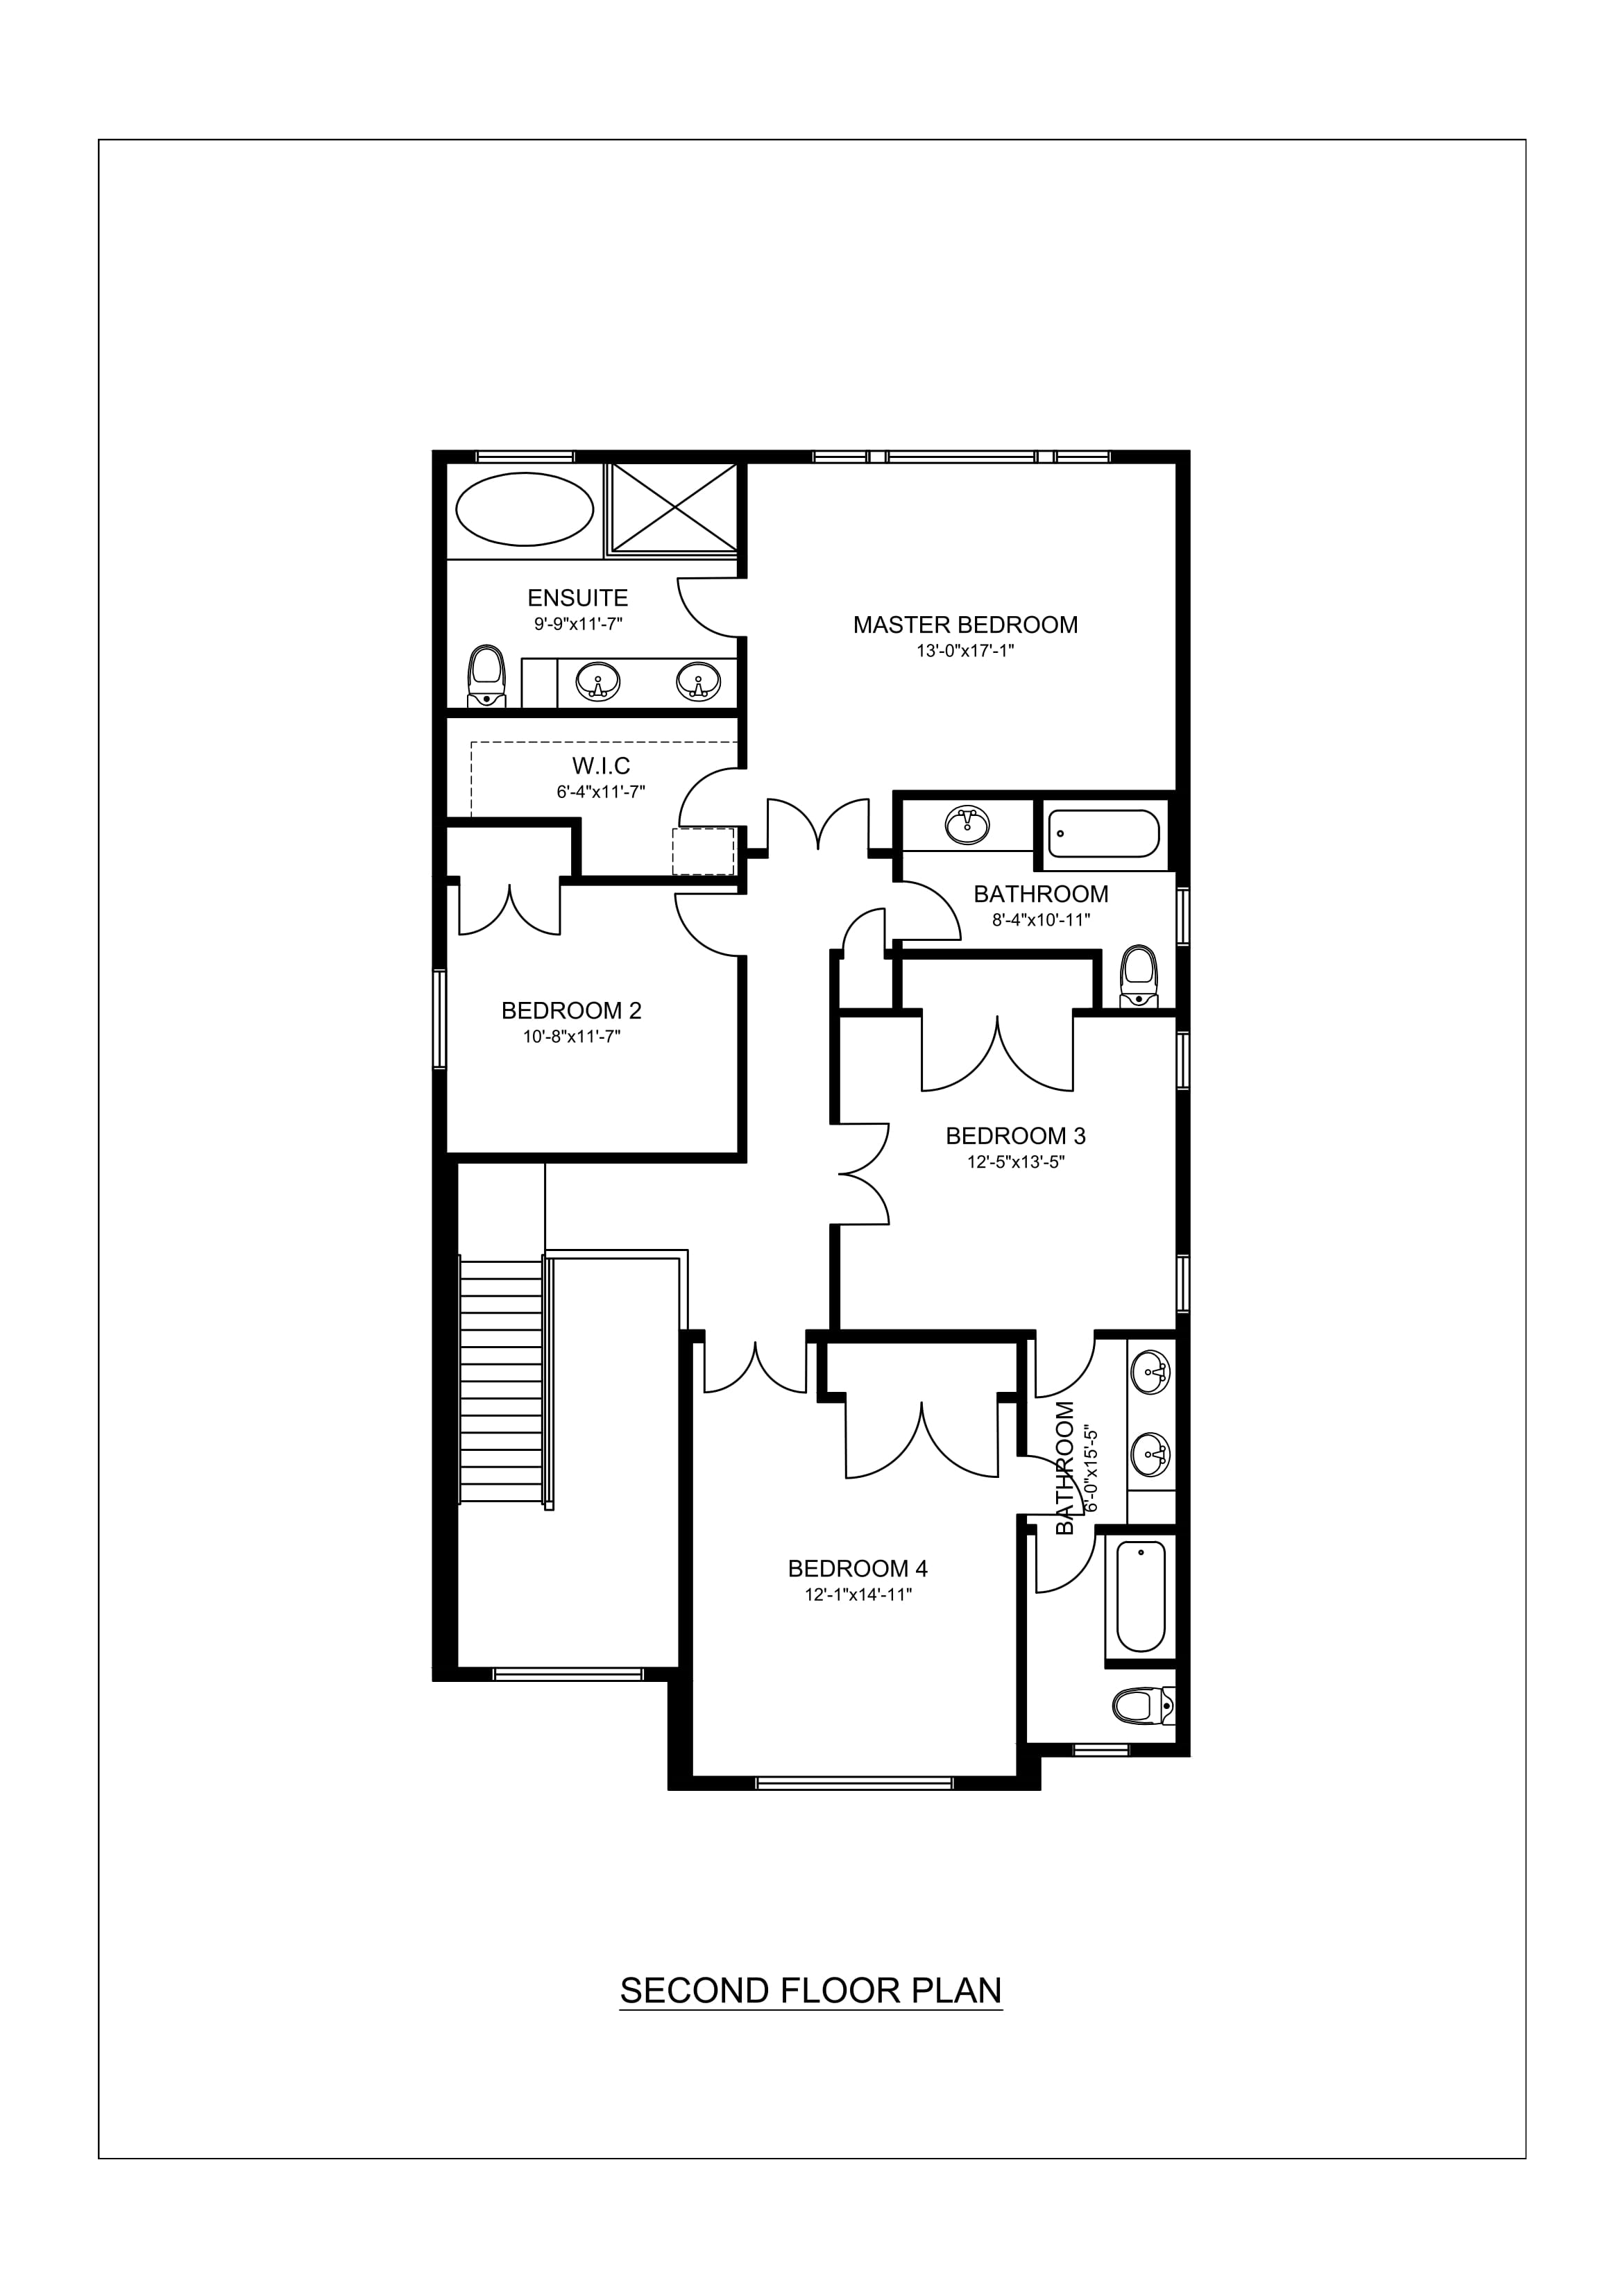 Sample Floor Plan Drawings & Templates